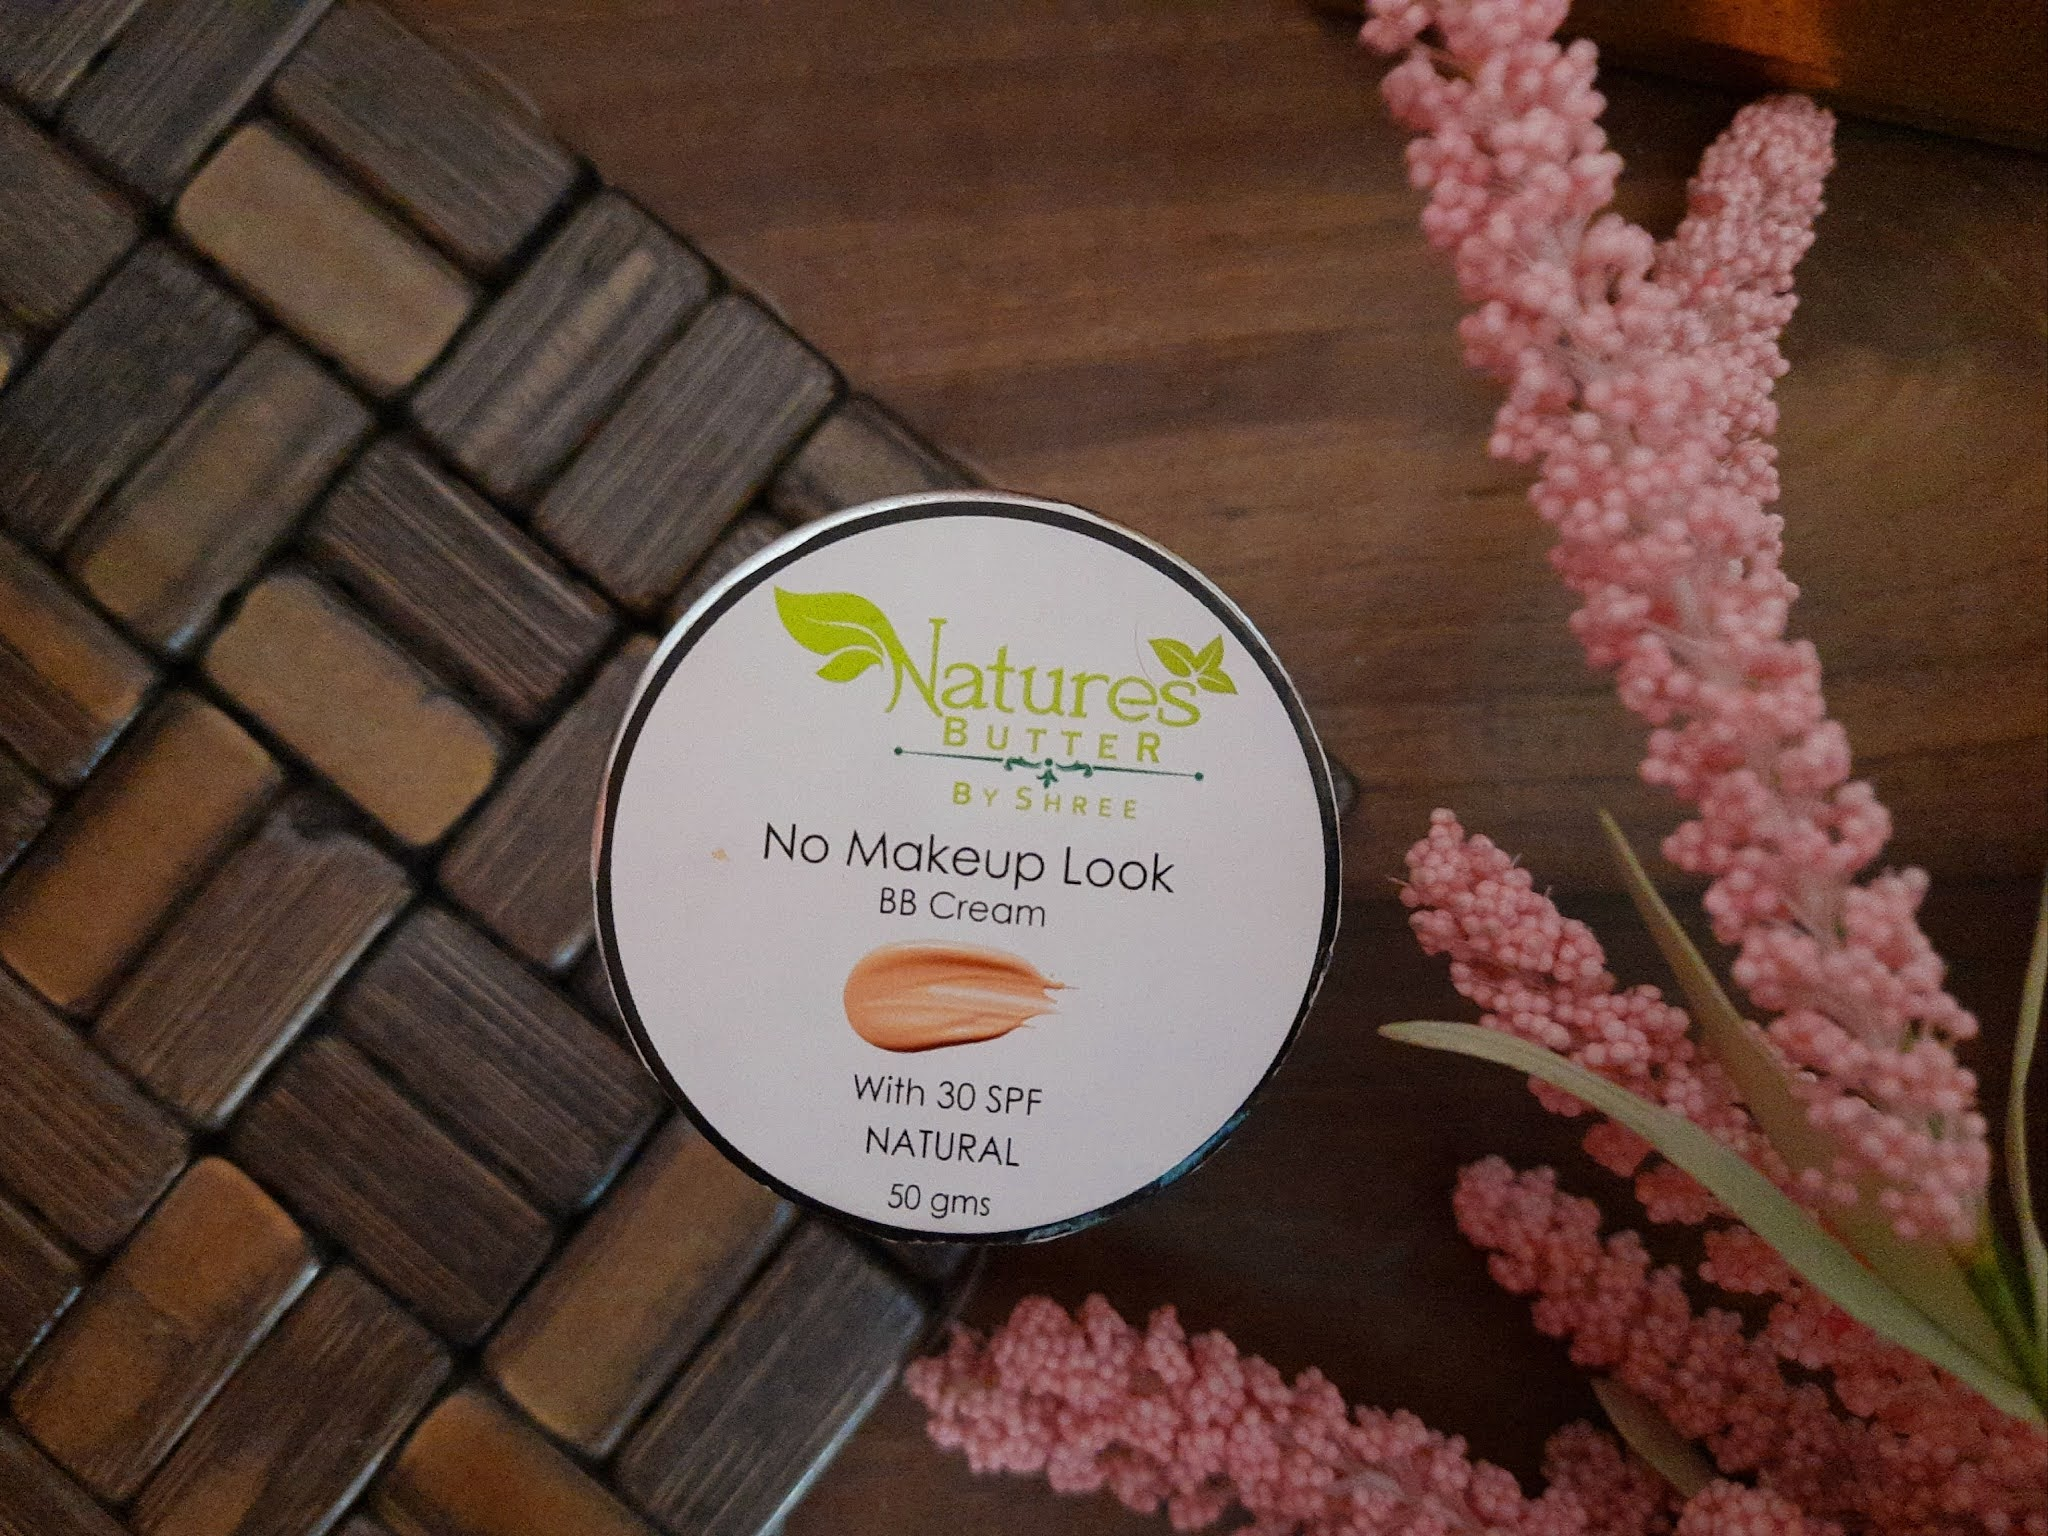 Natures Butter by Shree BB Cream